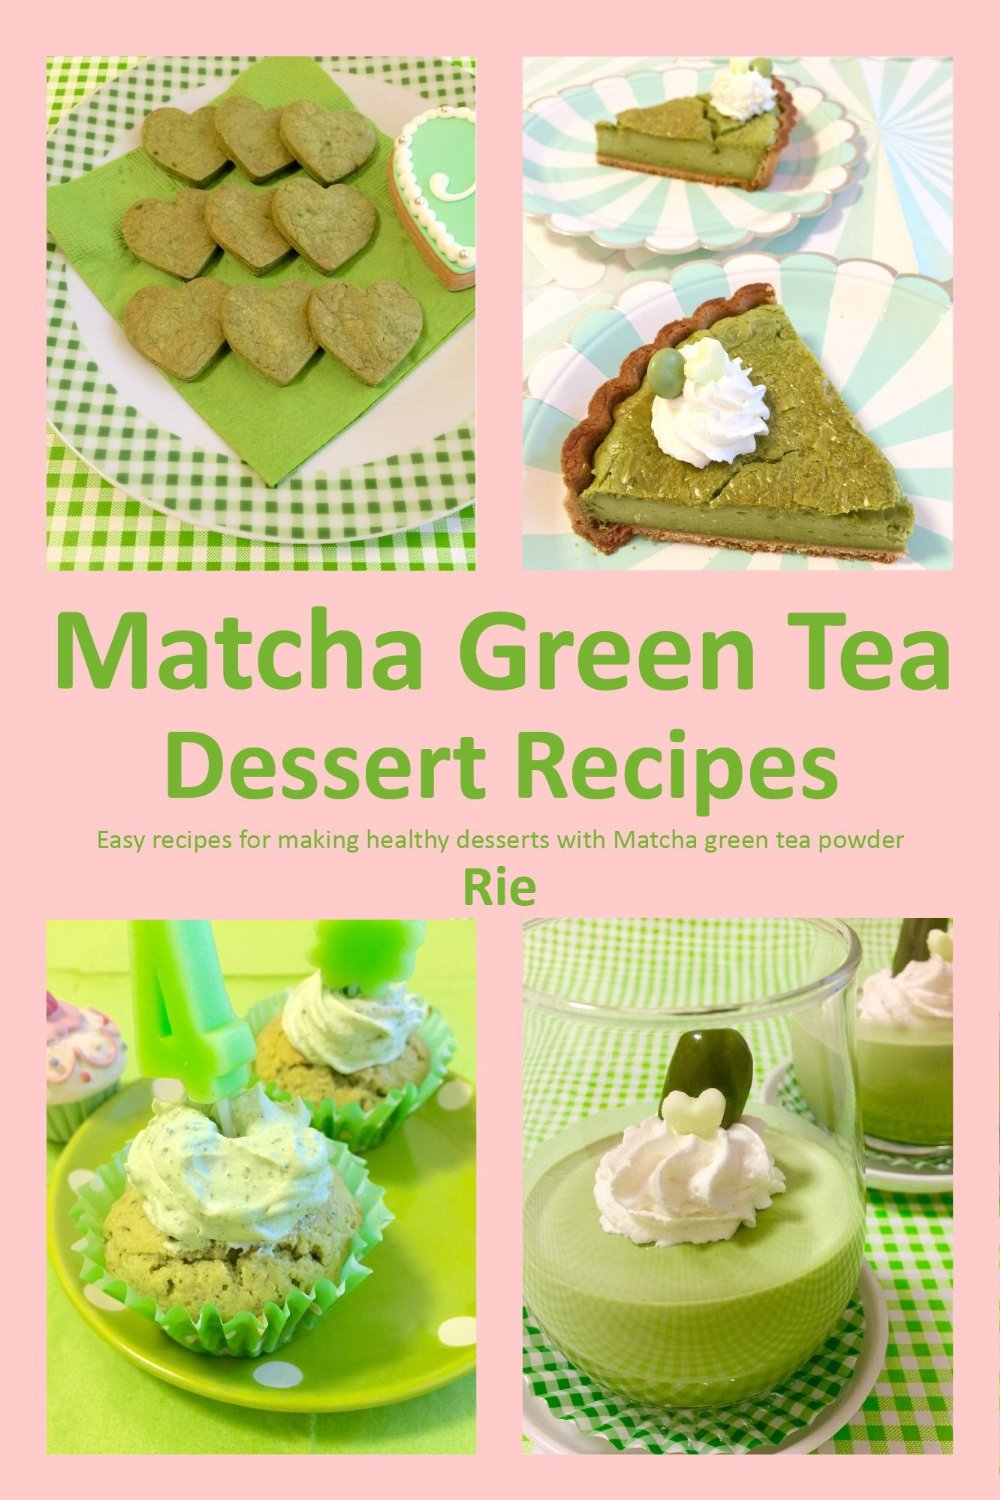 Matcha Green Tea Dessert Recipes (Rie's Healthy Recipes) free download